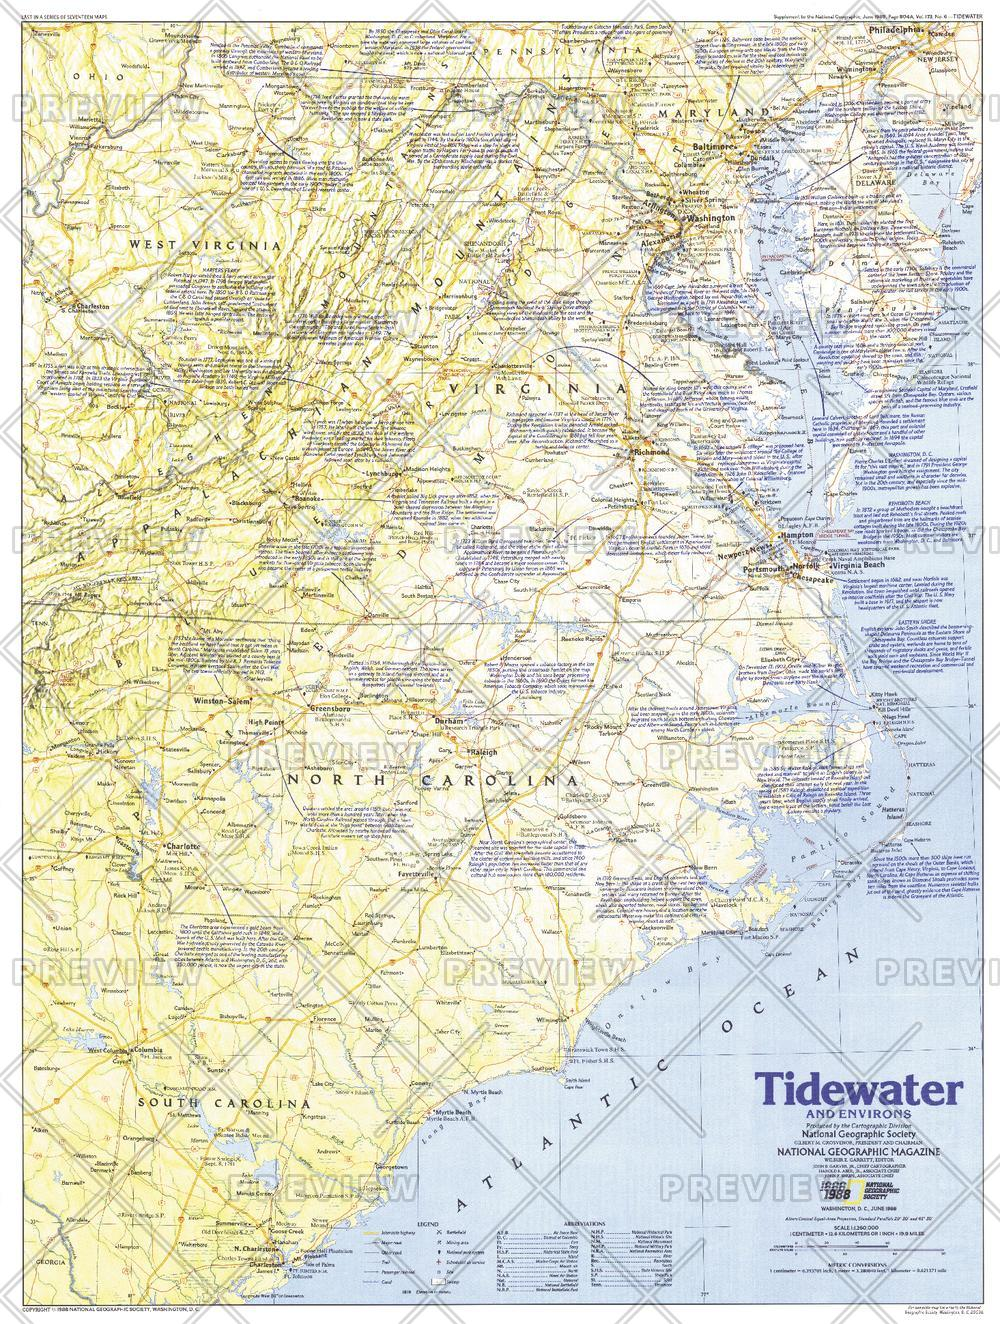 Tidewater and Environs  -  Published 1988